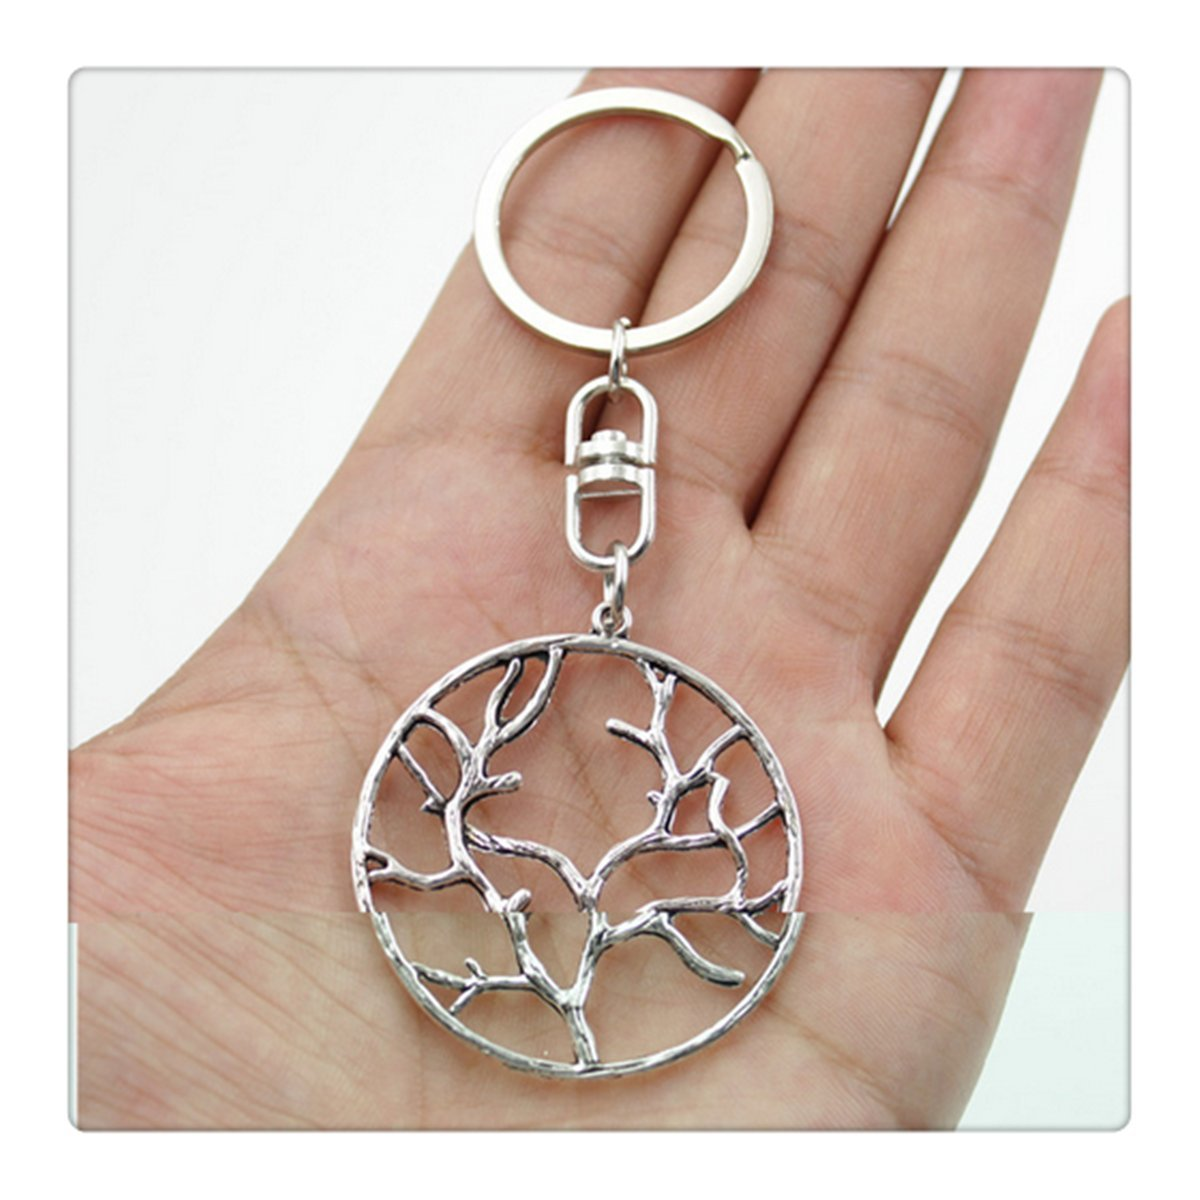 Vintage tree branch Key Rings Fashion Car Keychain Silver Color Metal Key Chains Accessory